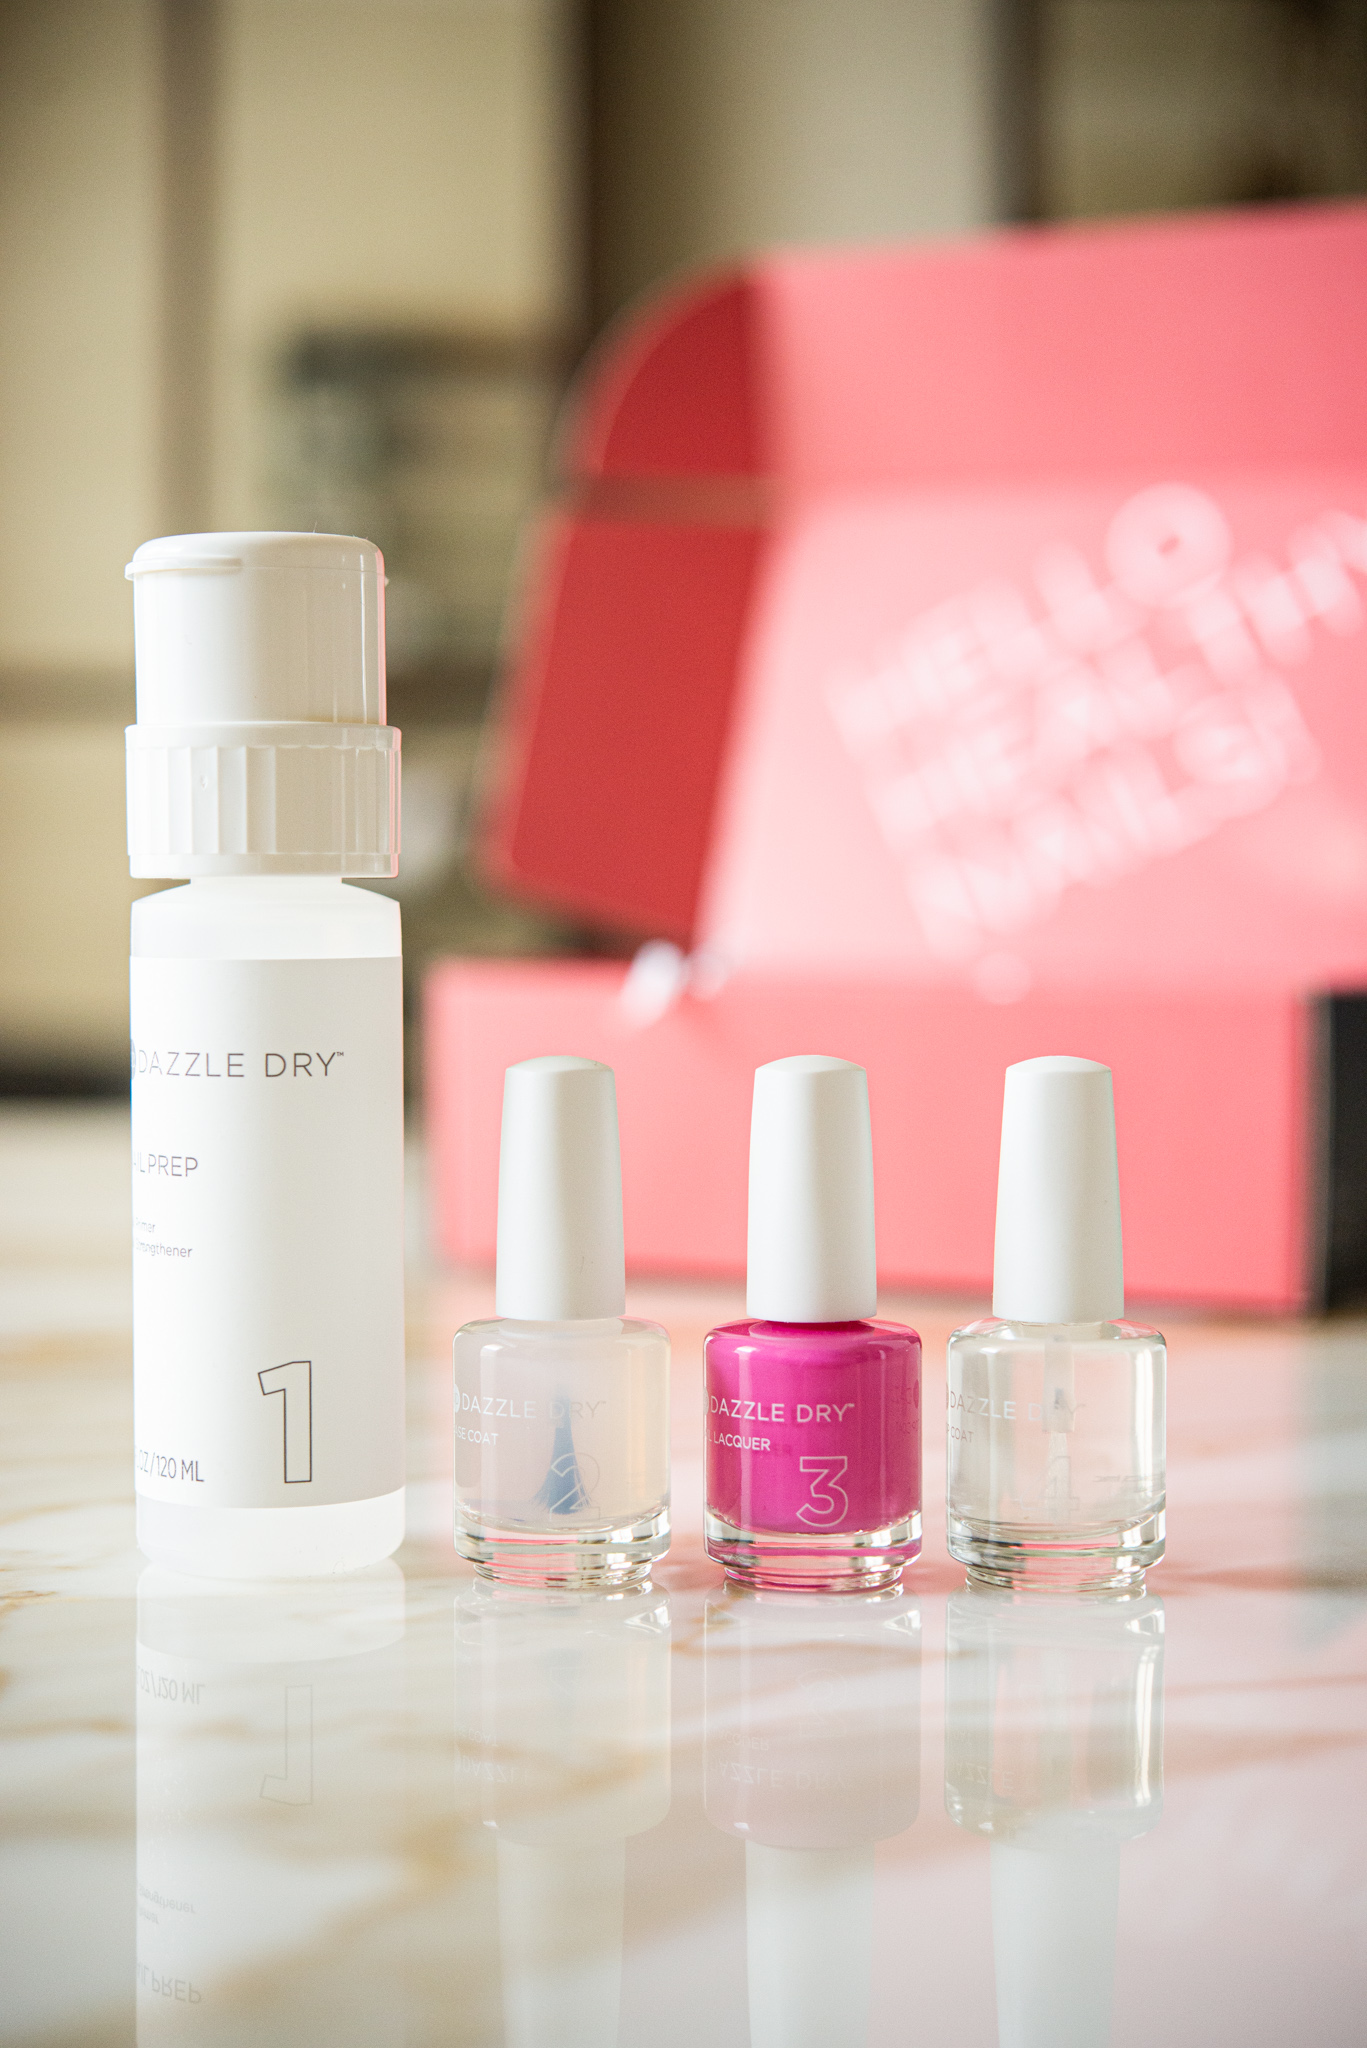 dazzle dry nail system - bright pink nail polish next to two clear nail polishes and a remover, on a marble table